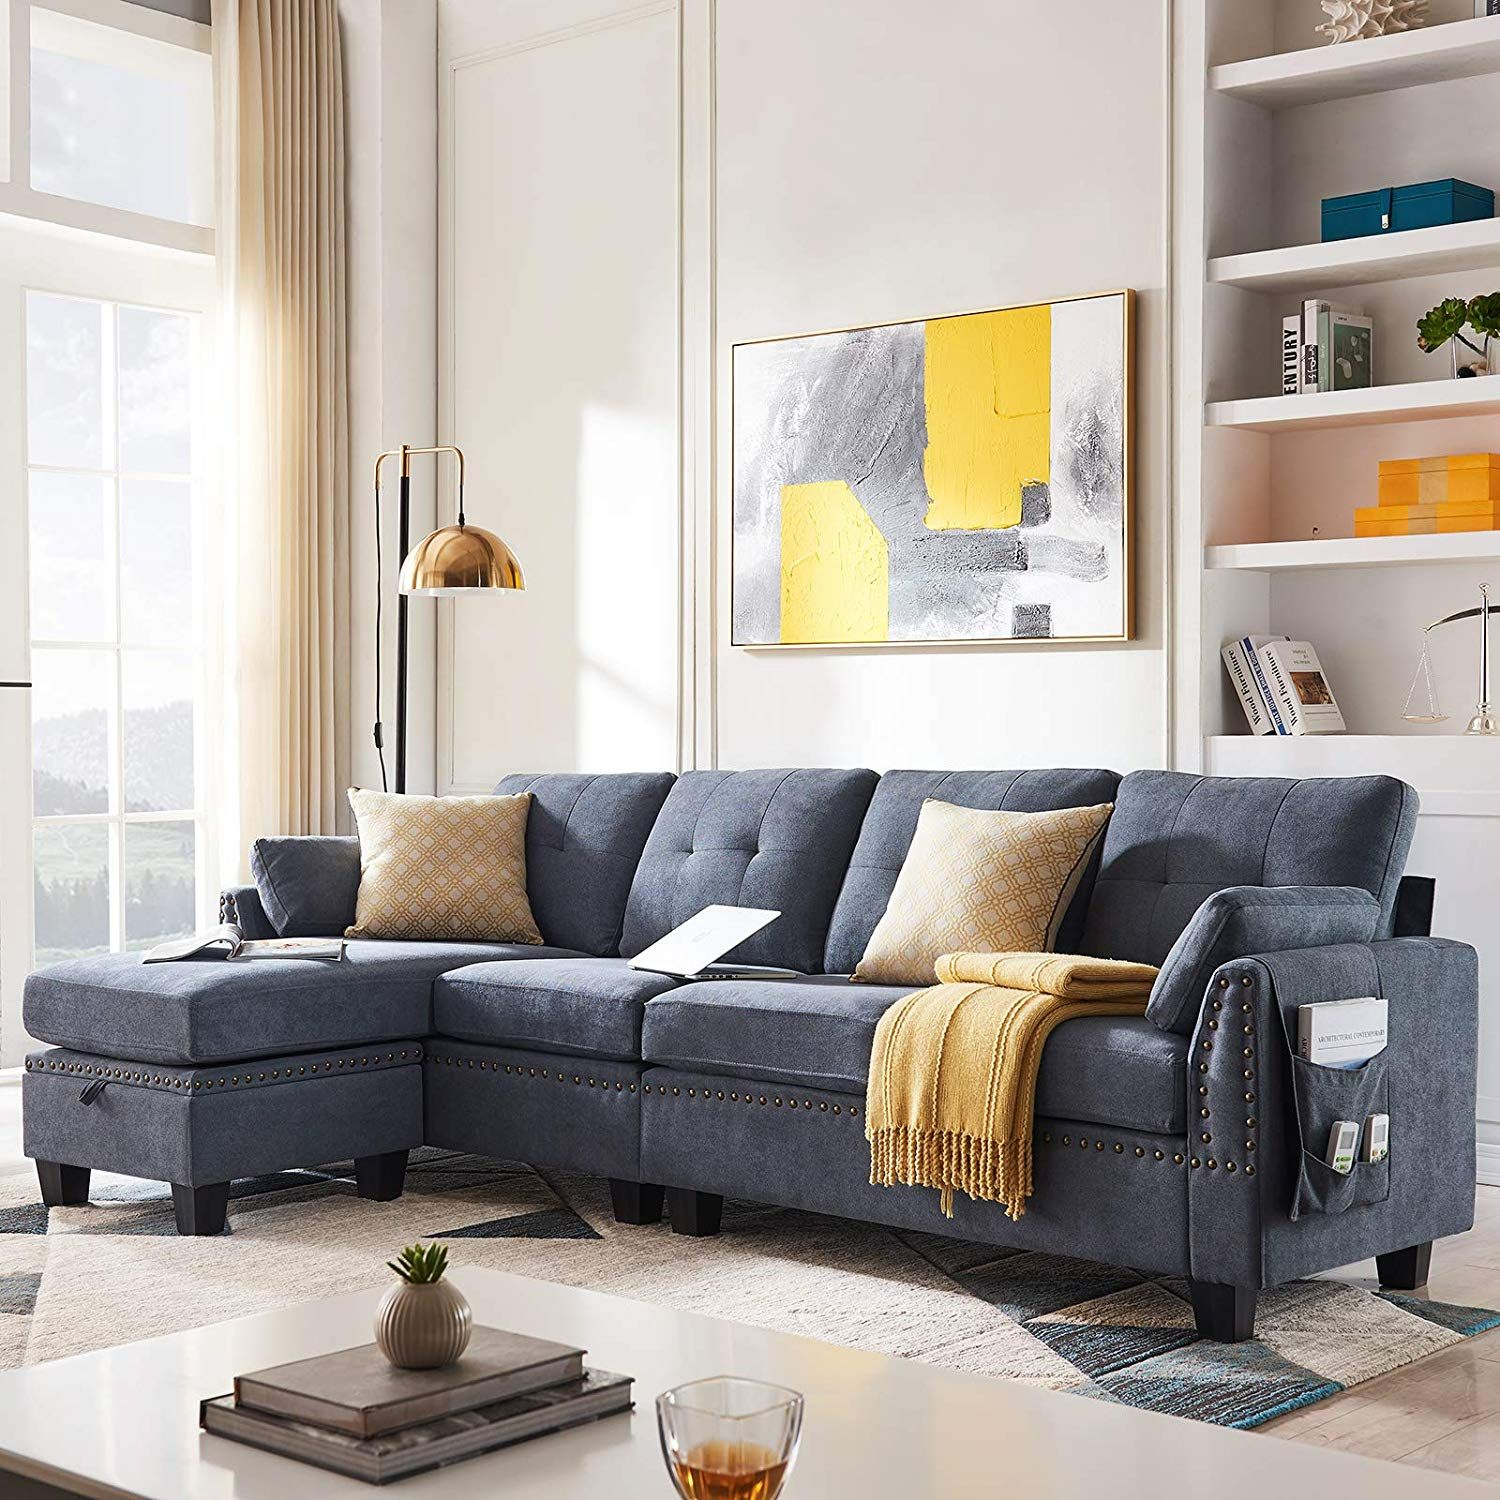 The 5 Best Cheap Sectional Couches In 2020 Sectional Sofa